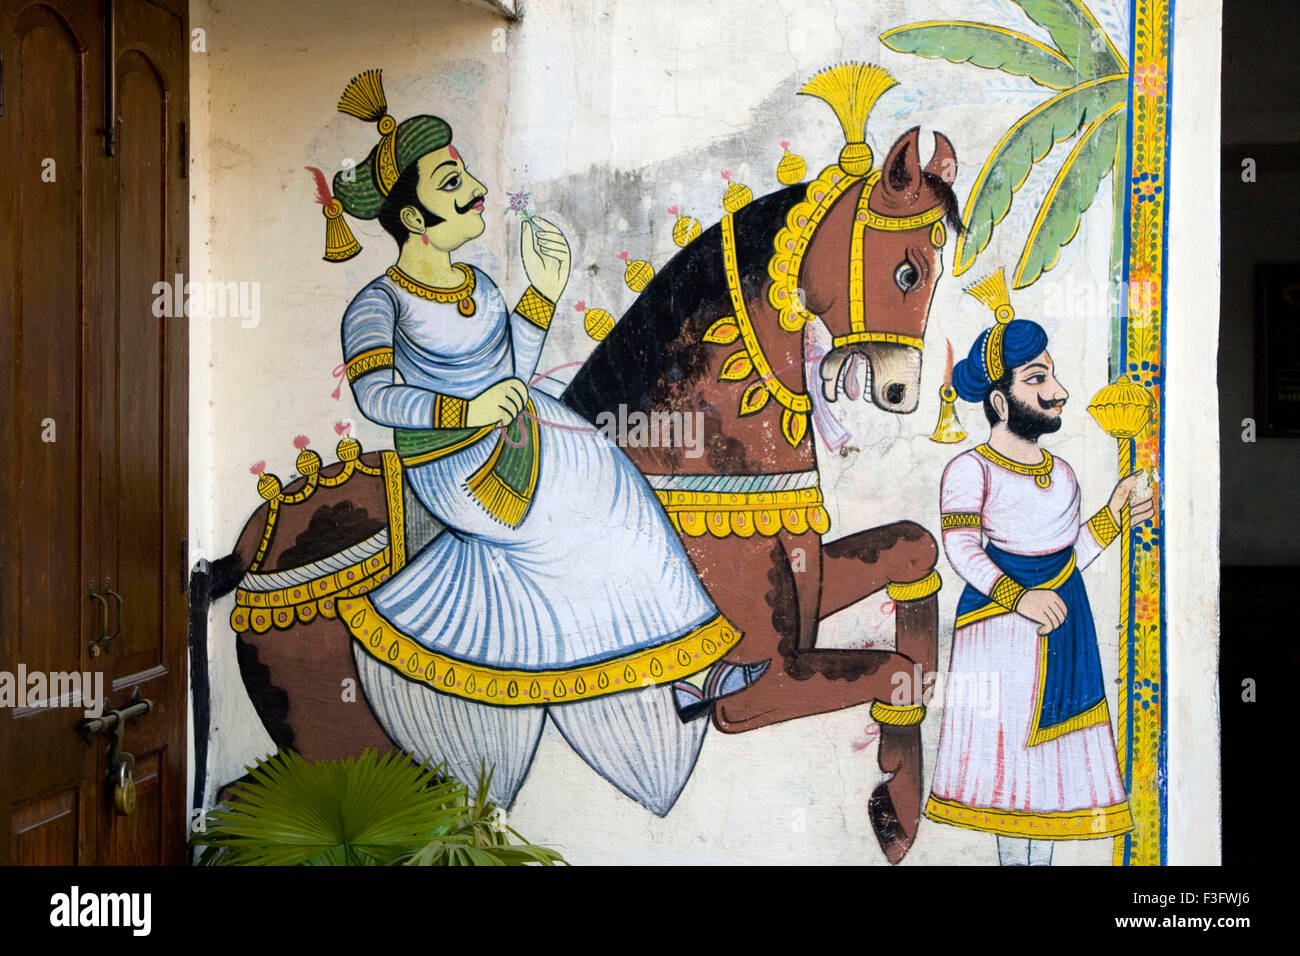 Mural Painting Of A King On The Horse Udaipur Rajasthan India Stock Photo Alamy